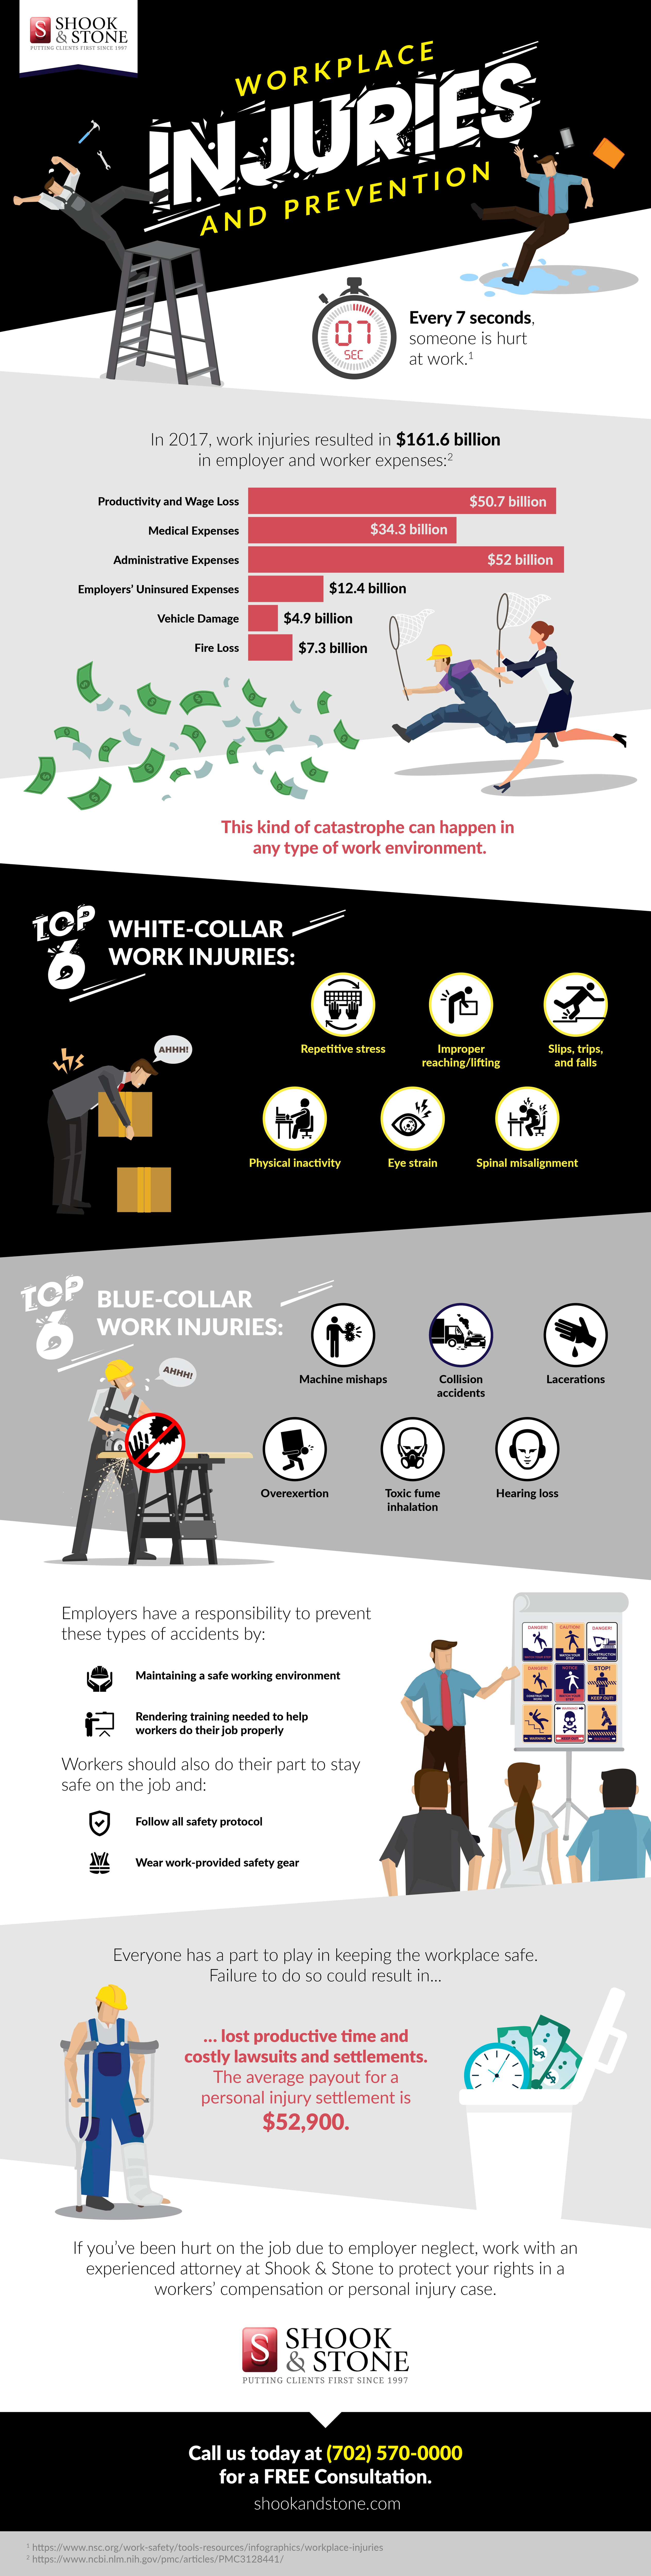 Infographic - Most Common Work Injuries and How to Prevent Them - Worker's Compensation Attoenry